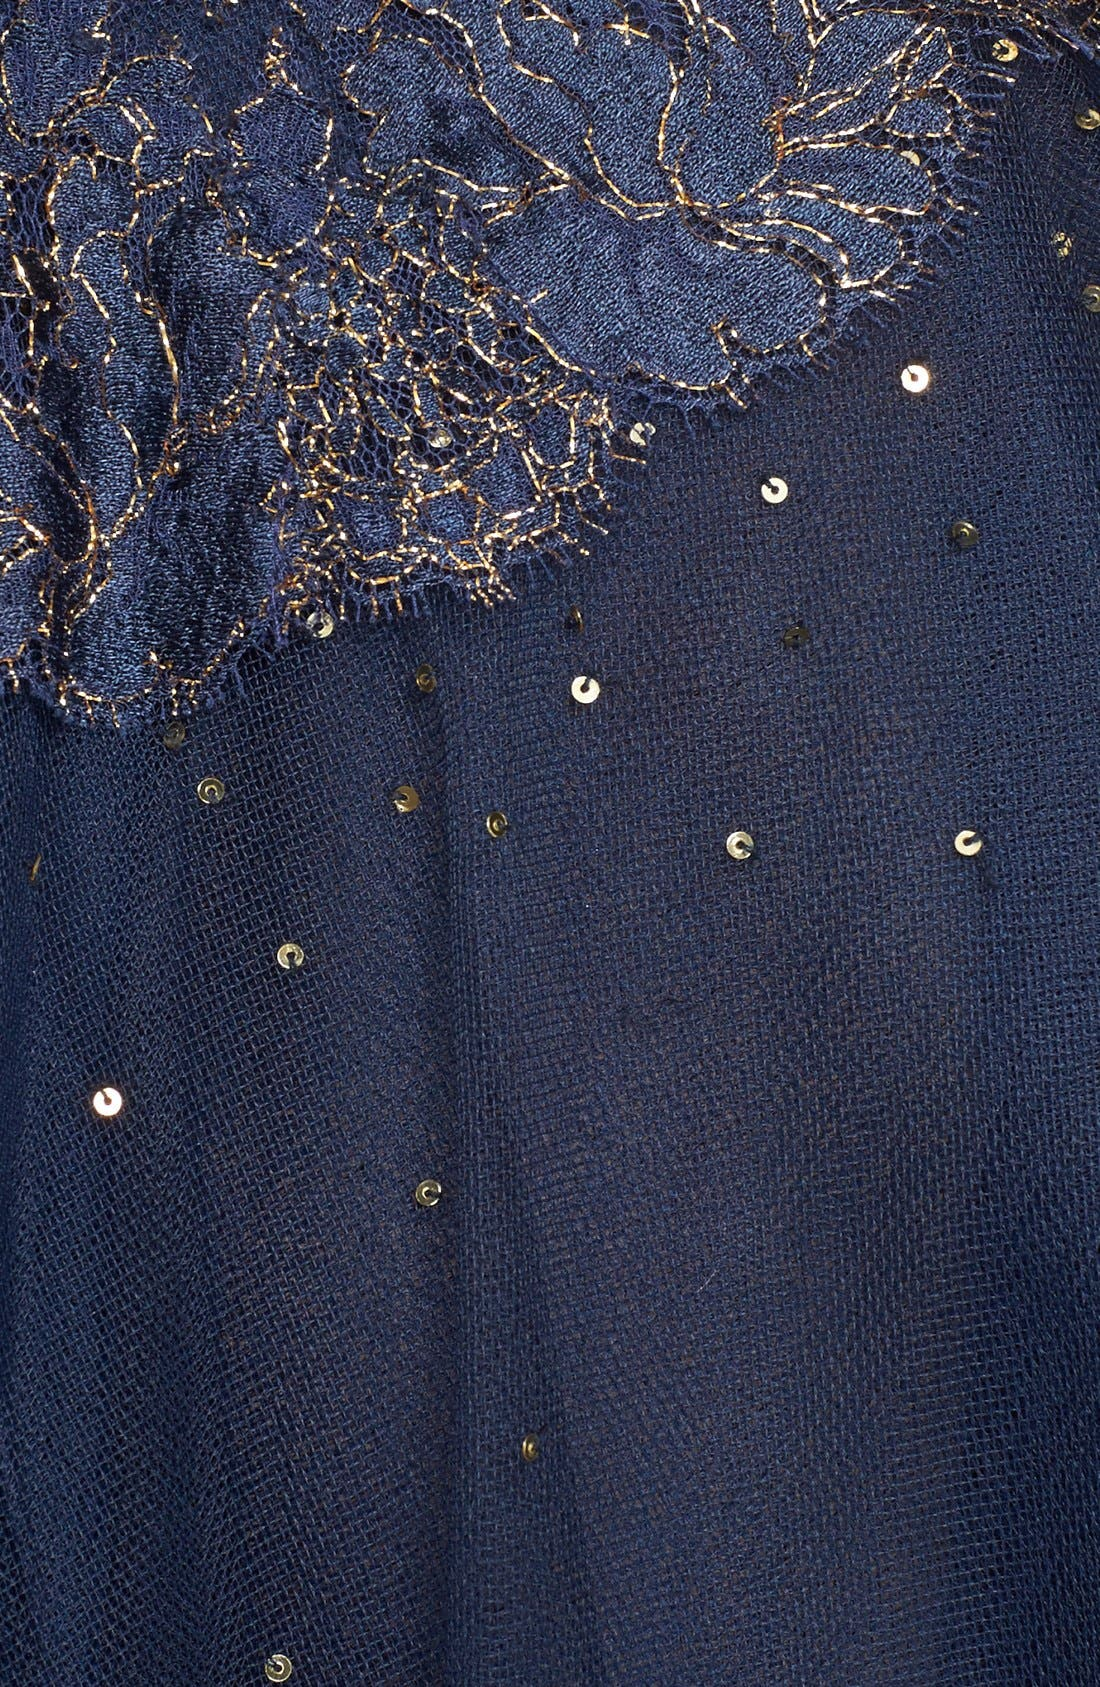 Chantilly Lace & Embellished Tulle High/Low Dress,                             Alternate thumbnail 3, color,                             Navy